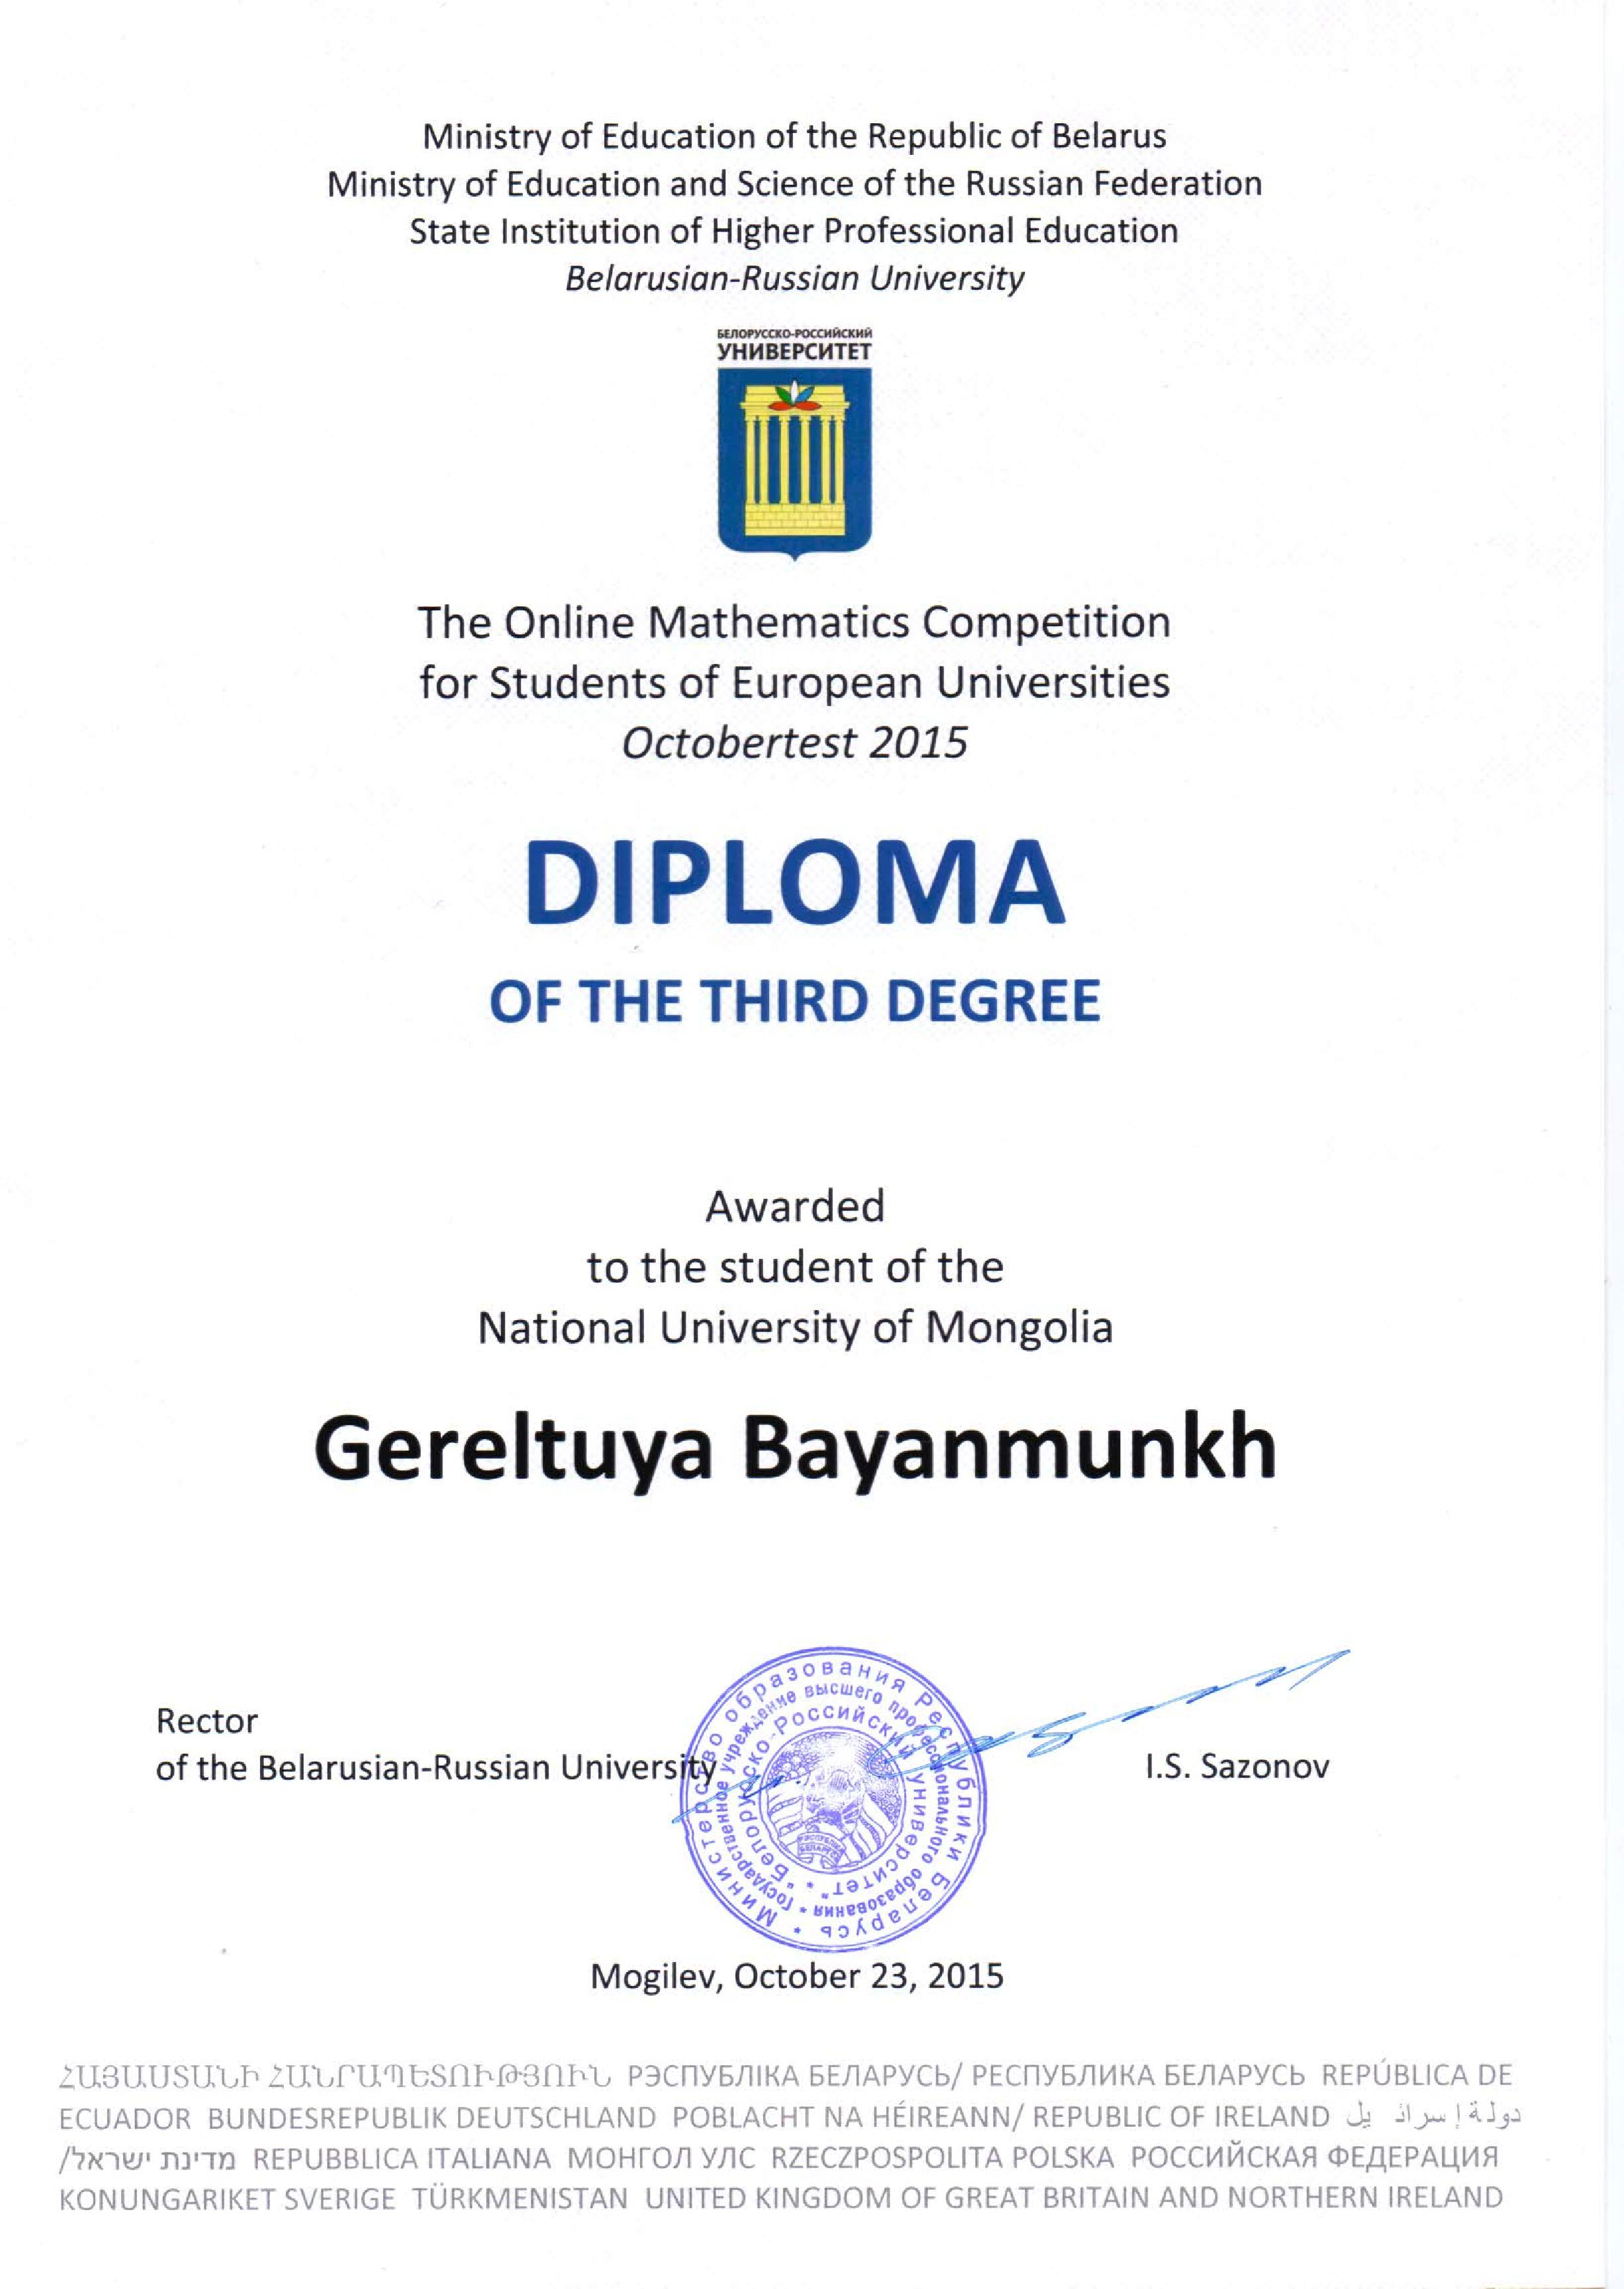 The scan of my third degree diploma